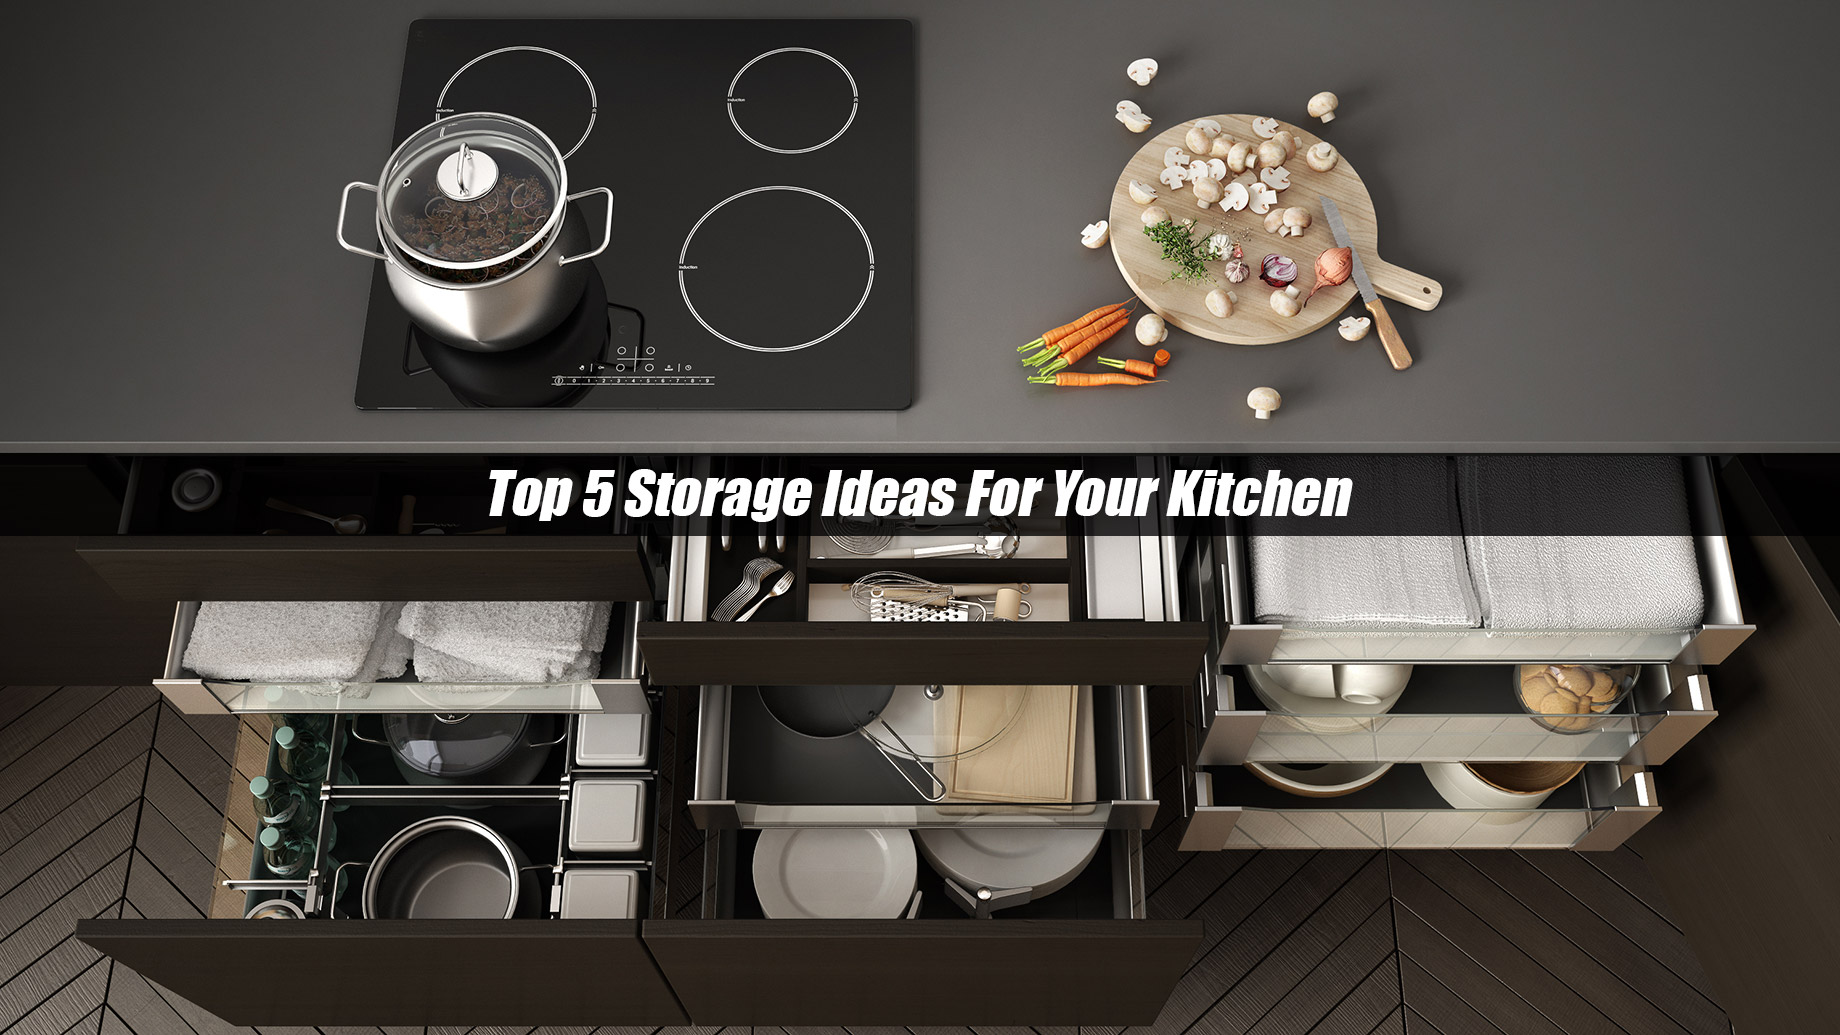 Top 5 Storage Ideas For Your Kitchen